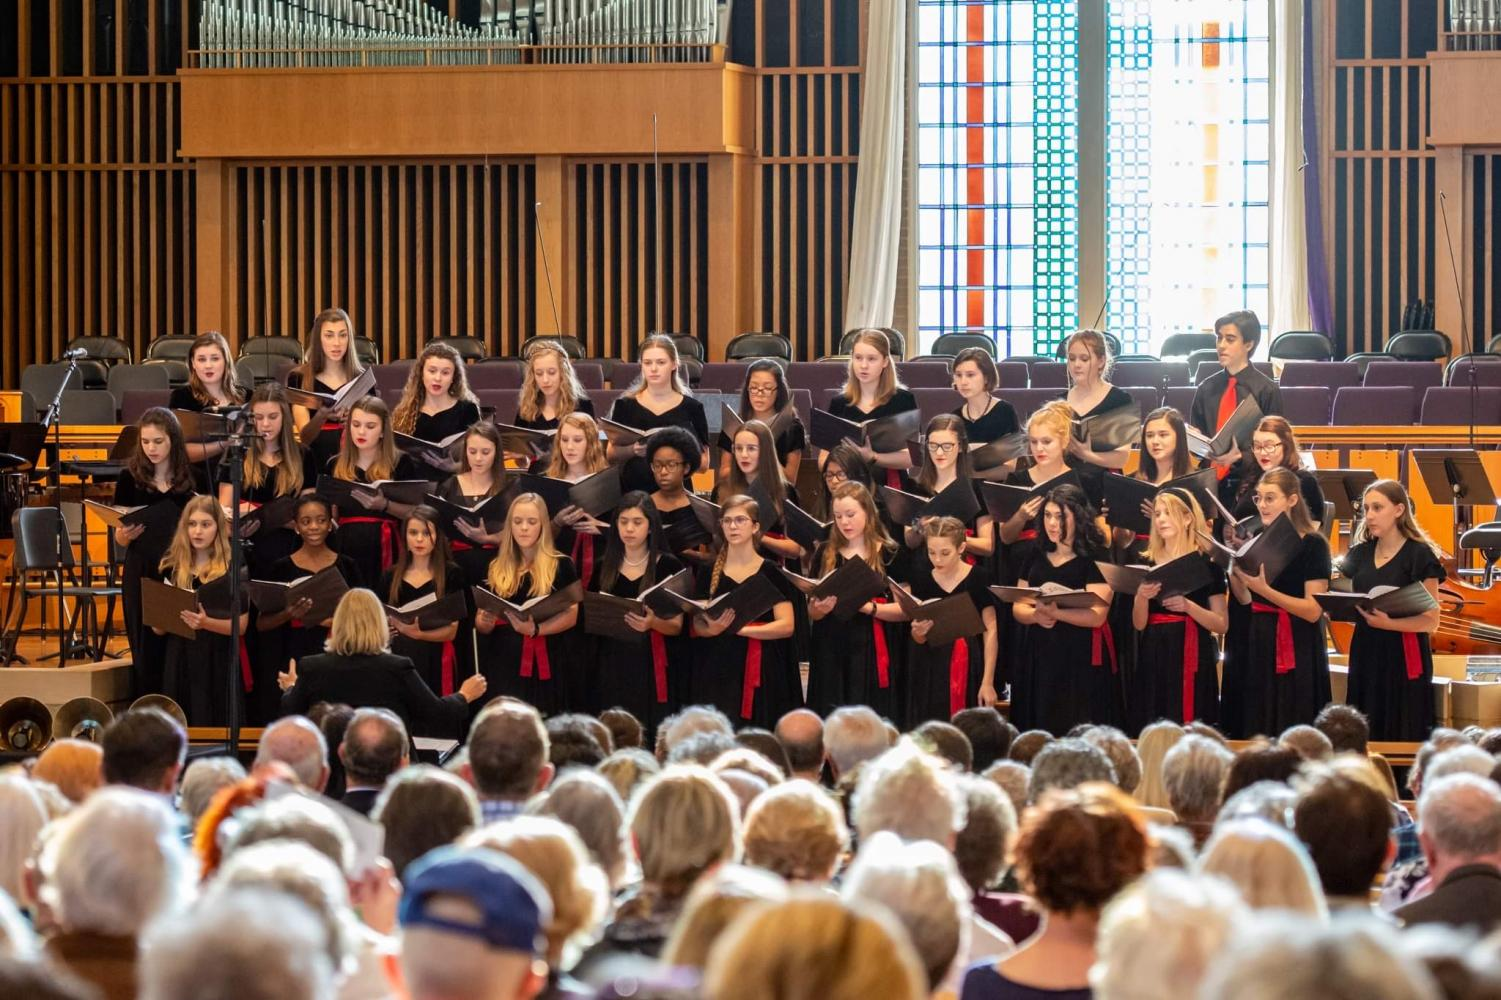 LSCC Chamber Choir preforming at the Bluegrass Tapestry concert.